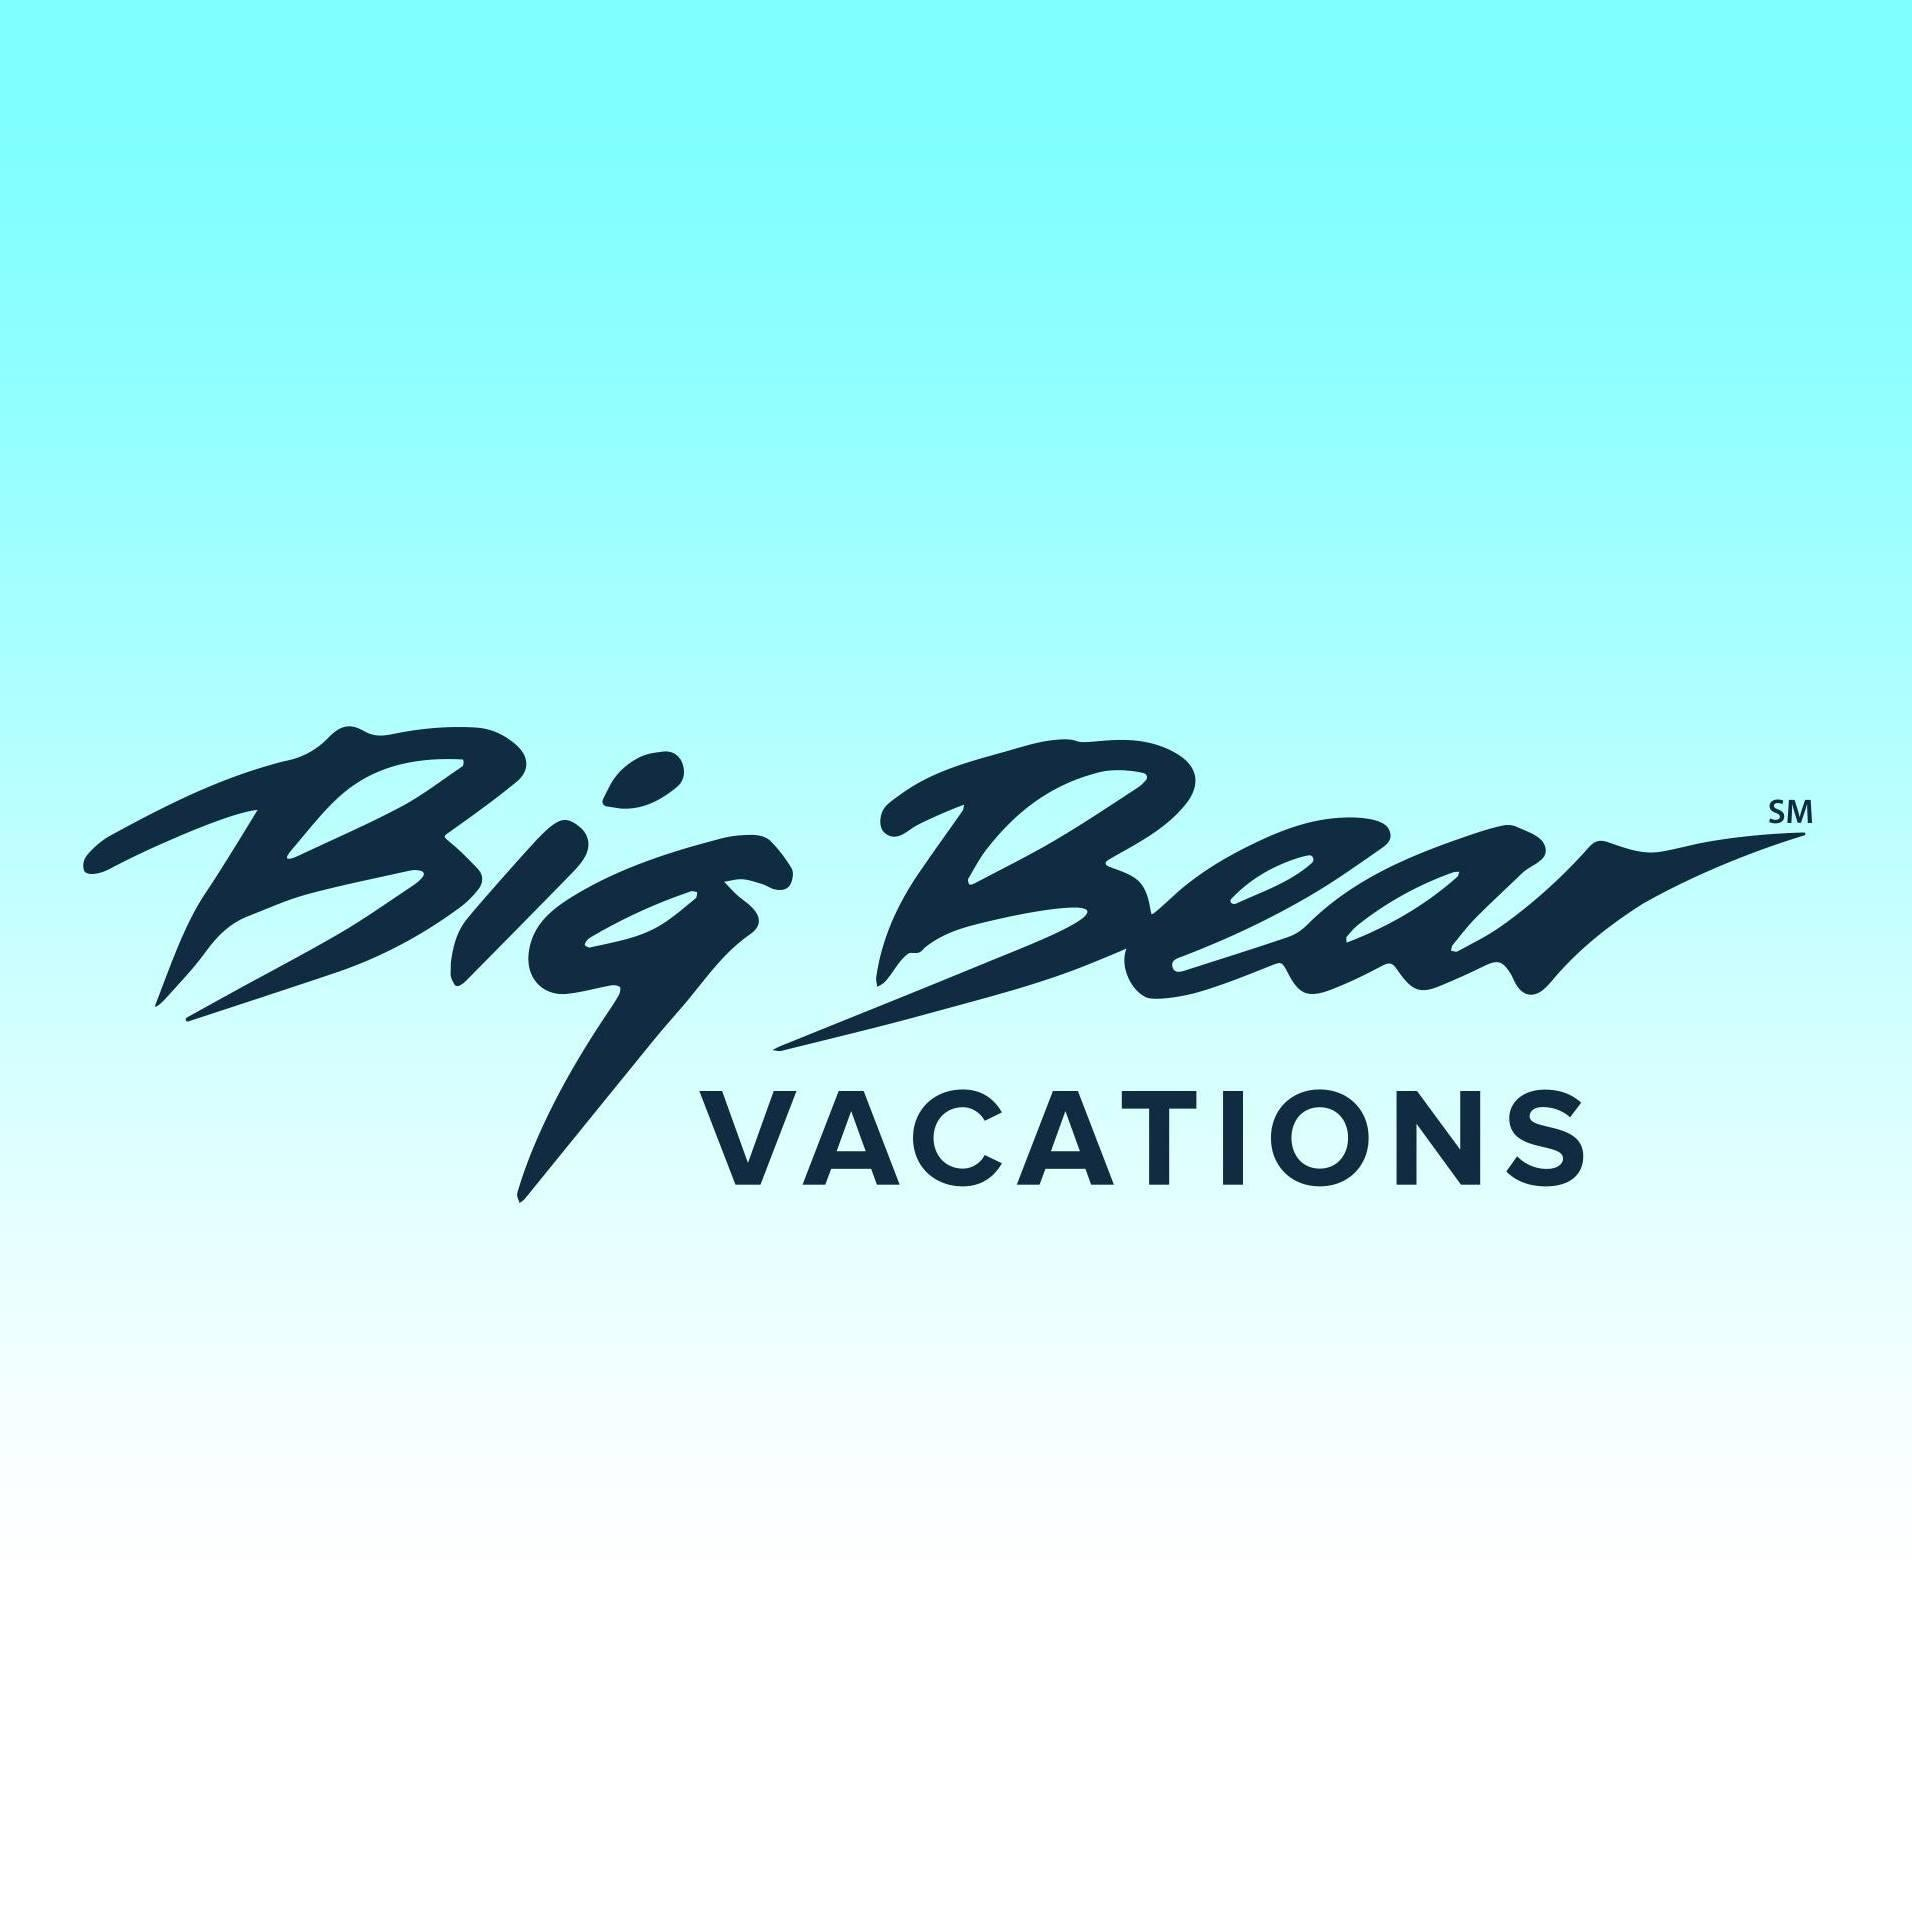 Vacation Home Rental Agency in CA Big Bear Lake 92315 Big Bear Vacations 41693 Big Bear Blvd  (877)417-6504